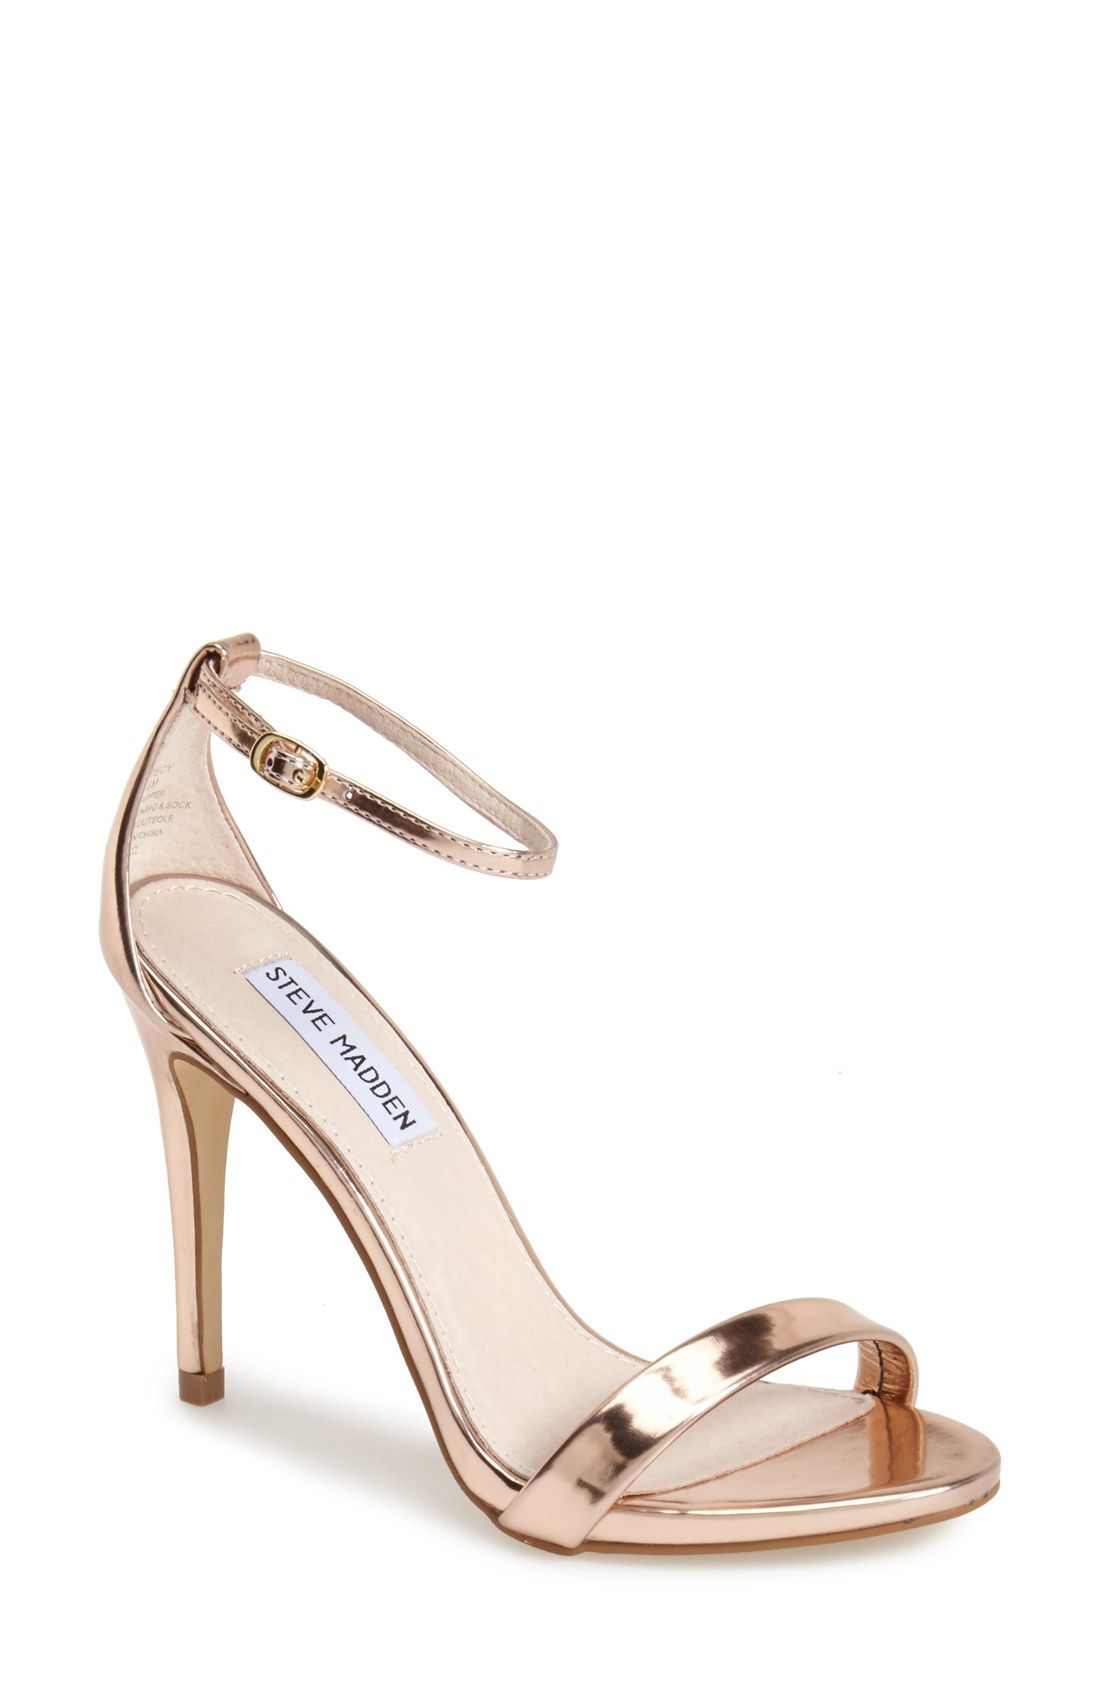 ab7aaec559f625 The perfect party shoe! Rose gold sandal.